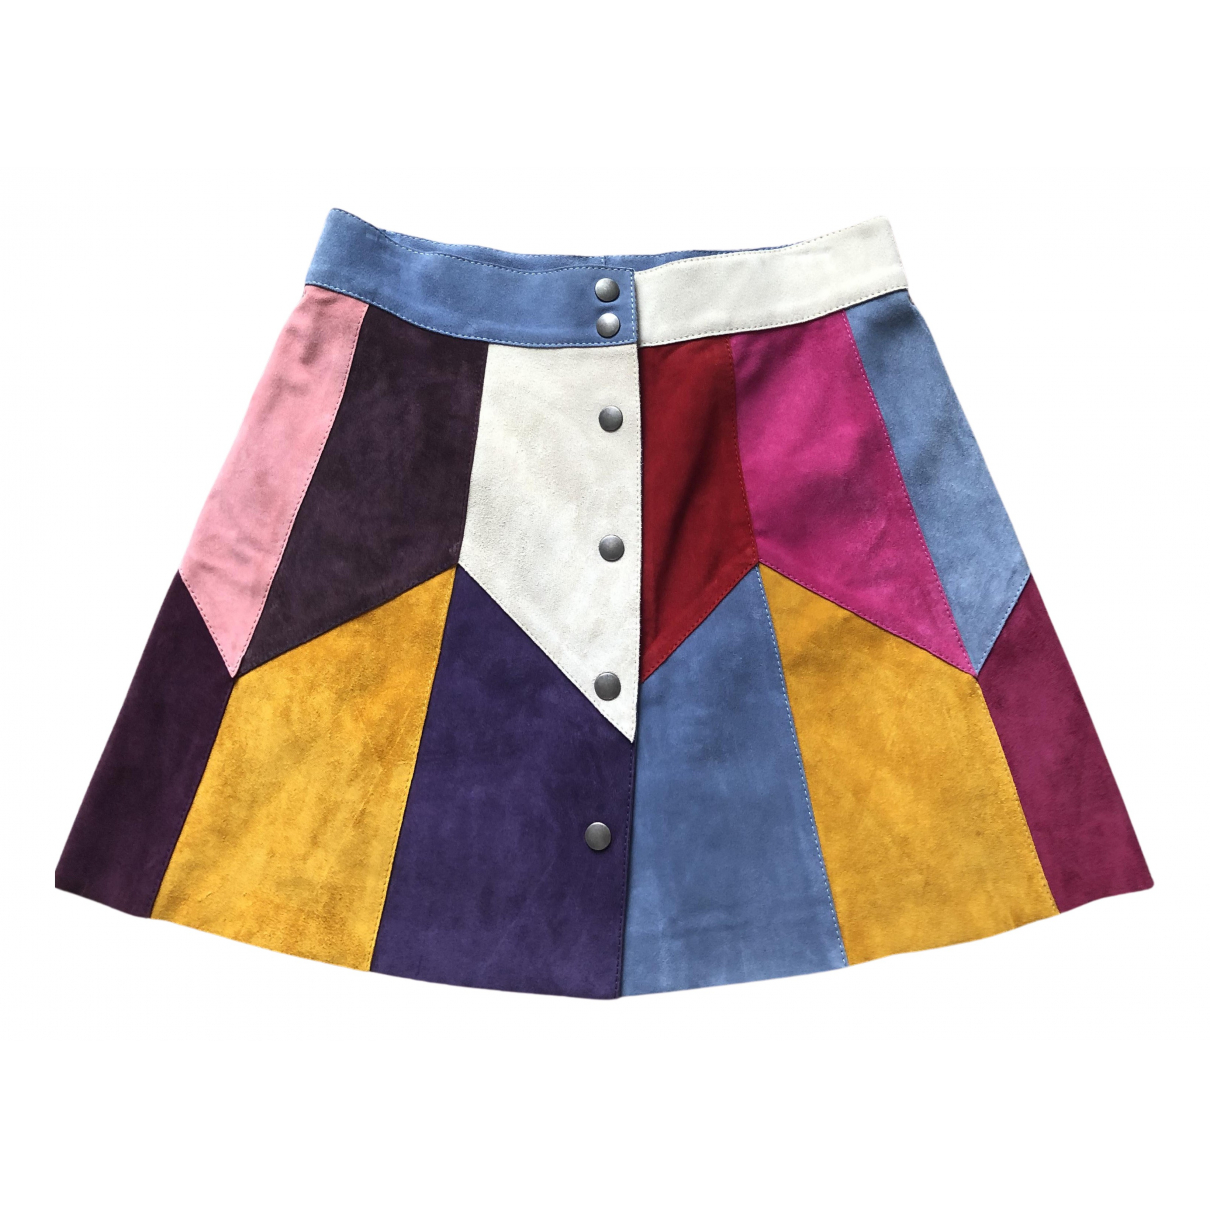 Marc Jacobs N Multicolour Suede skirt for Women 6 US